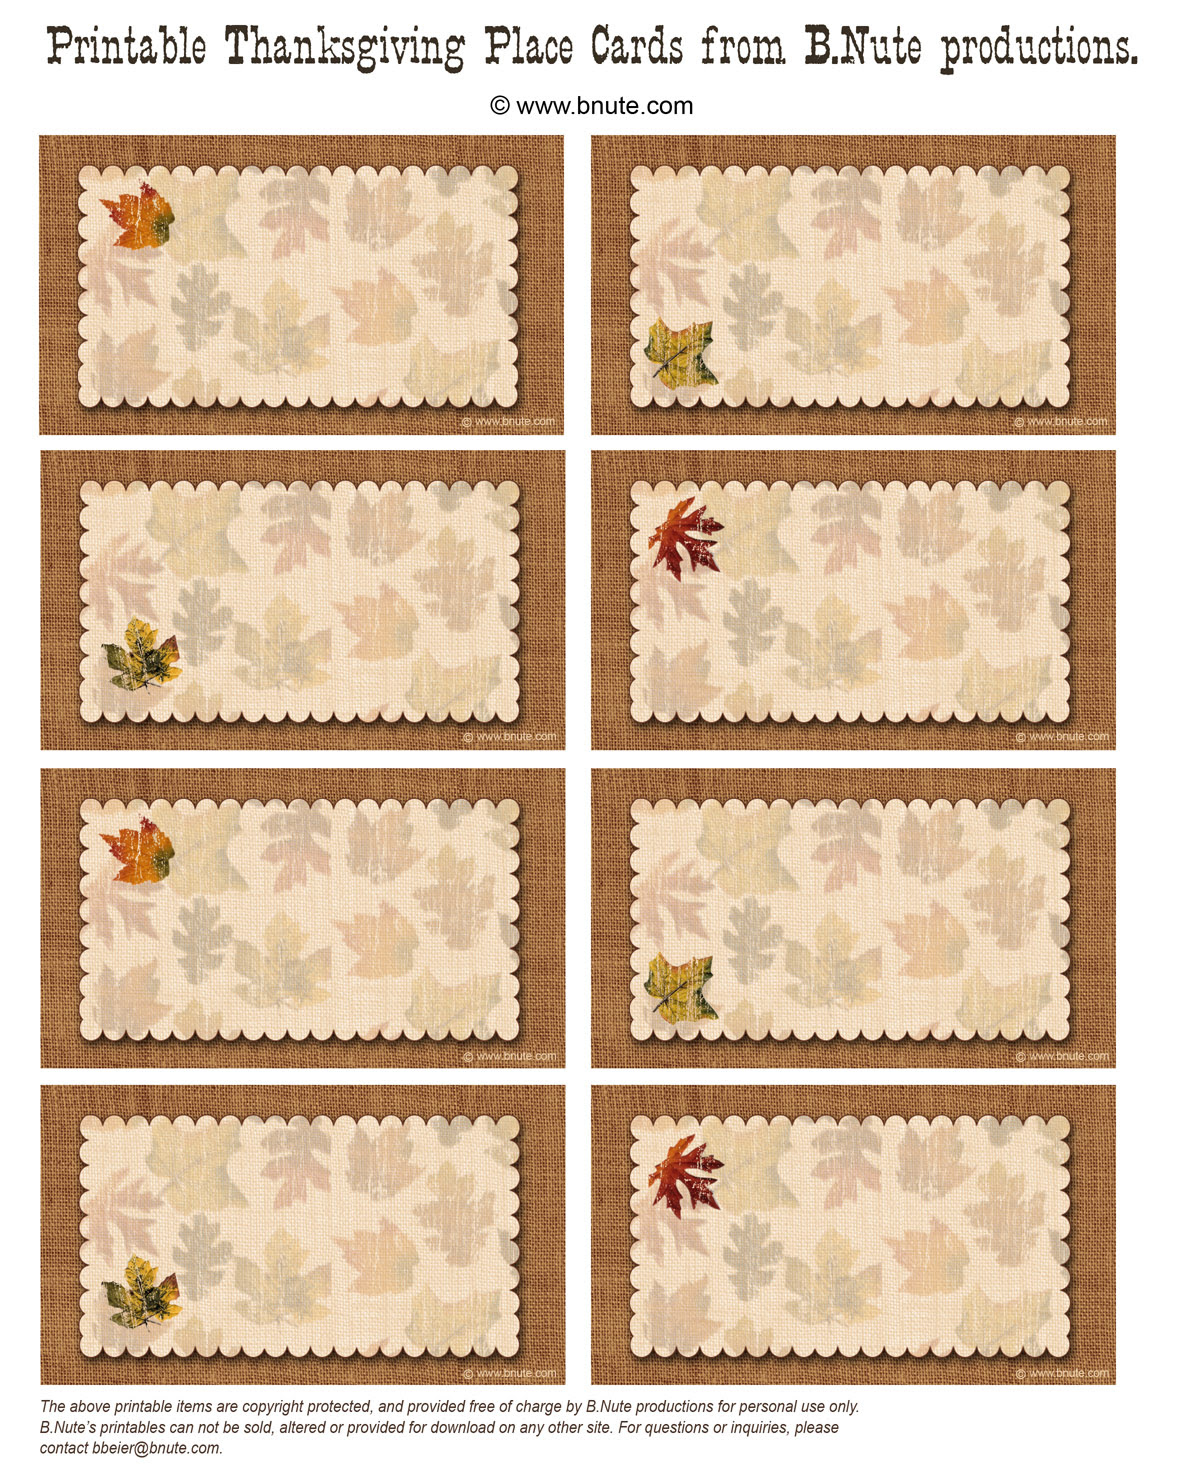 This is an image of Ridiculous Free Printable Thanksgiving Cards